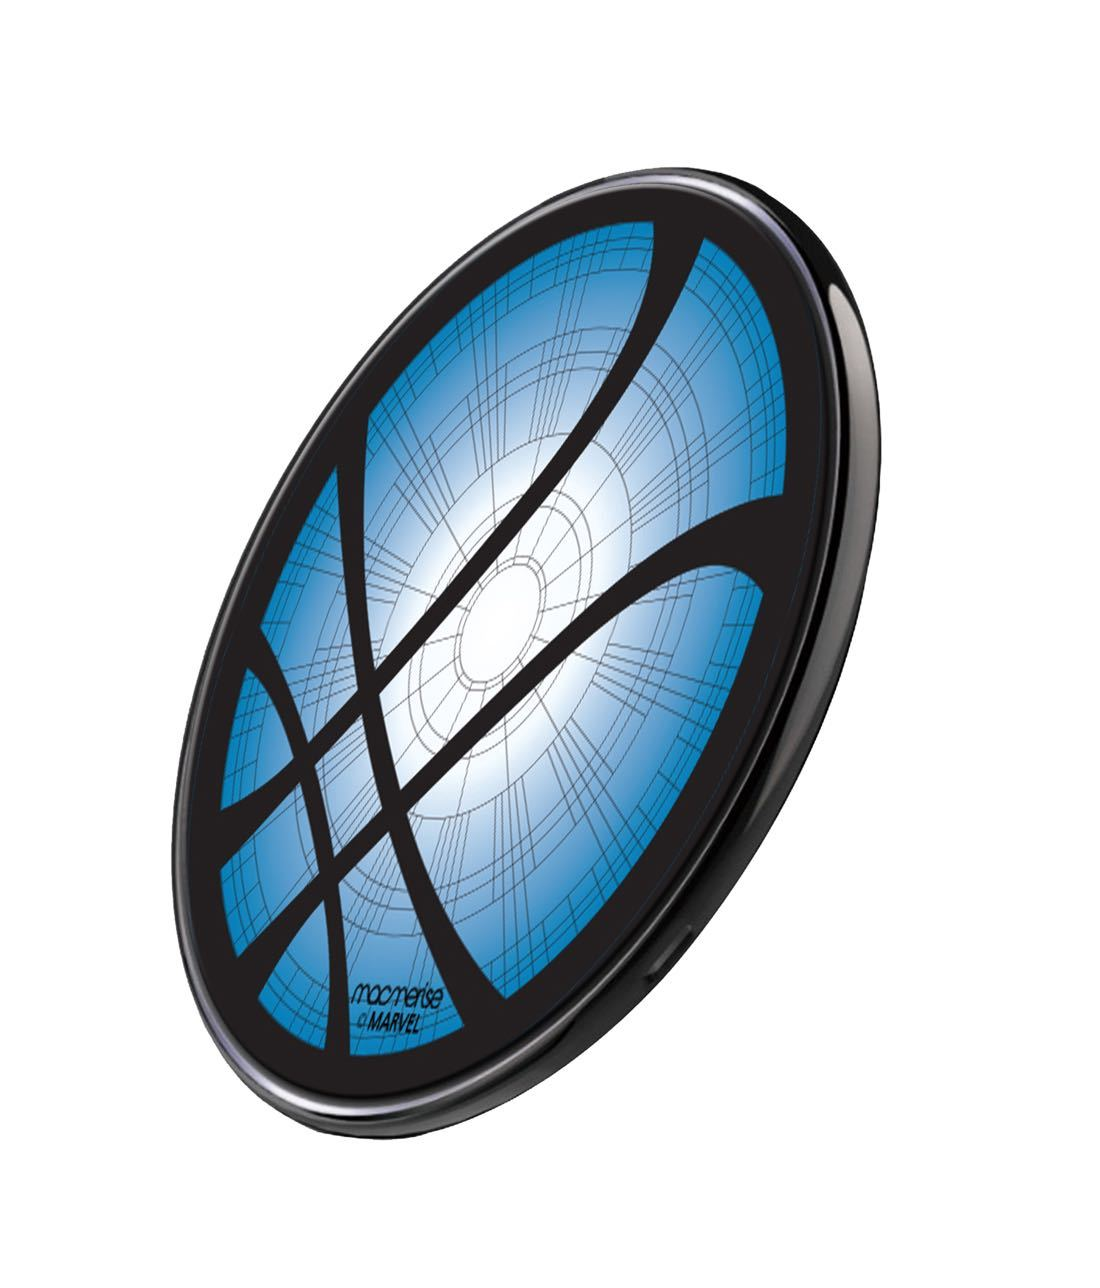 Doctor Strange Logo Wireless Charger by Macmerise -Macmerise - India - www.superherotoystore.com